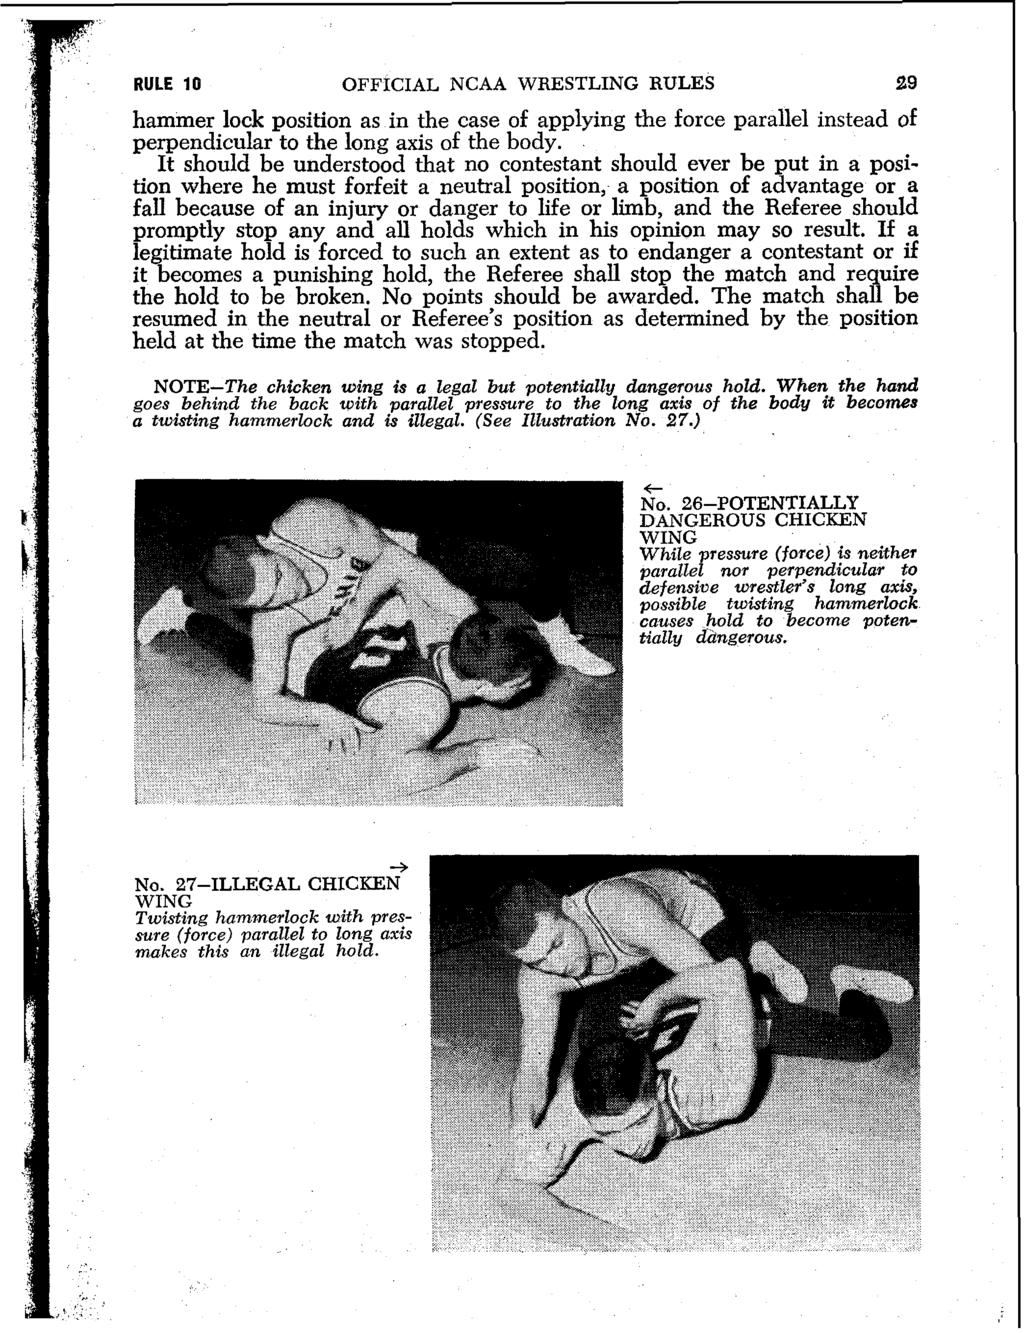 RULE 10 OFFICIAL NCAA WRESTLING RULES 29 hammer lock position as in the case of applying the force parallel instead of perpendicular to the long axis of the body.